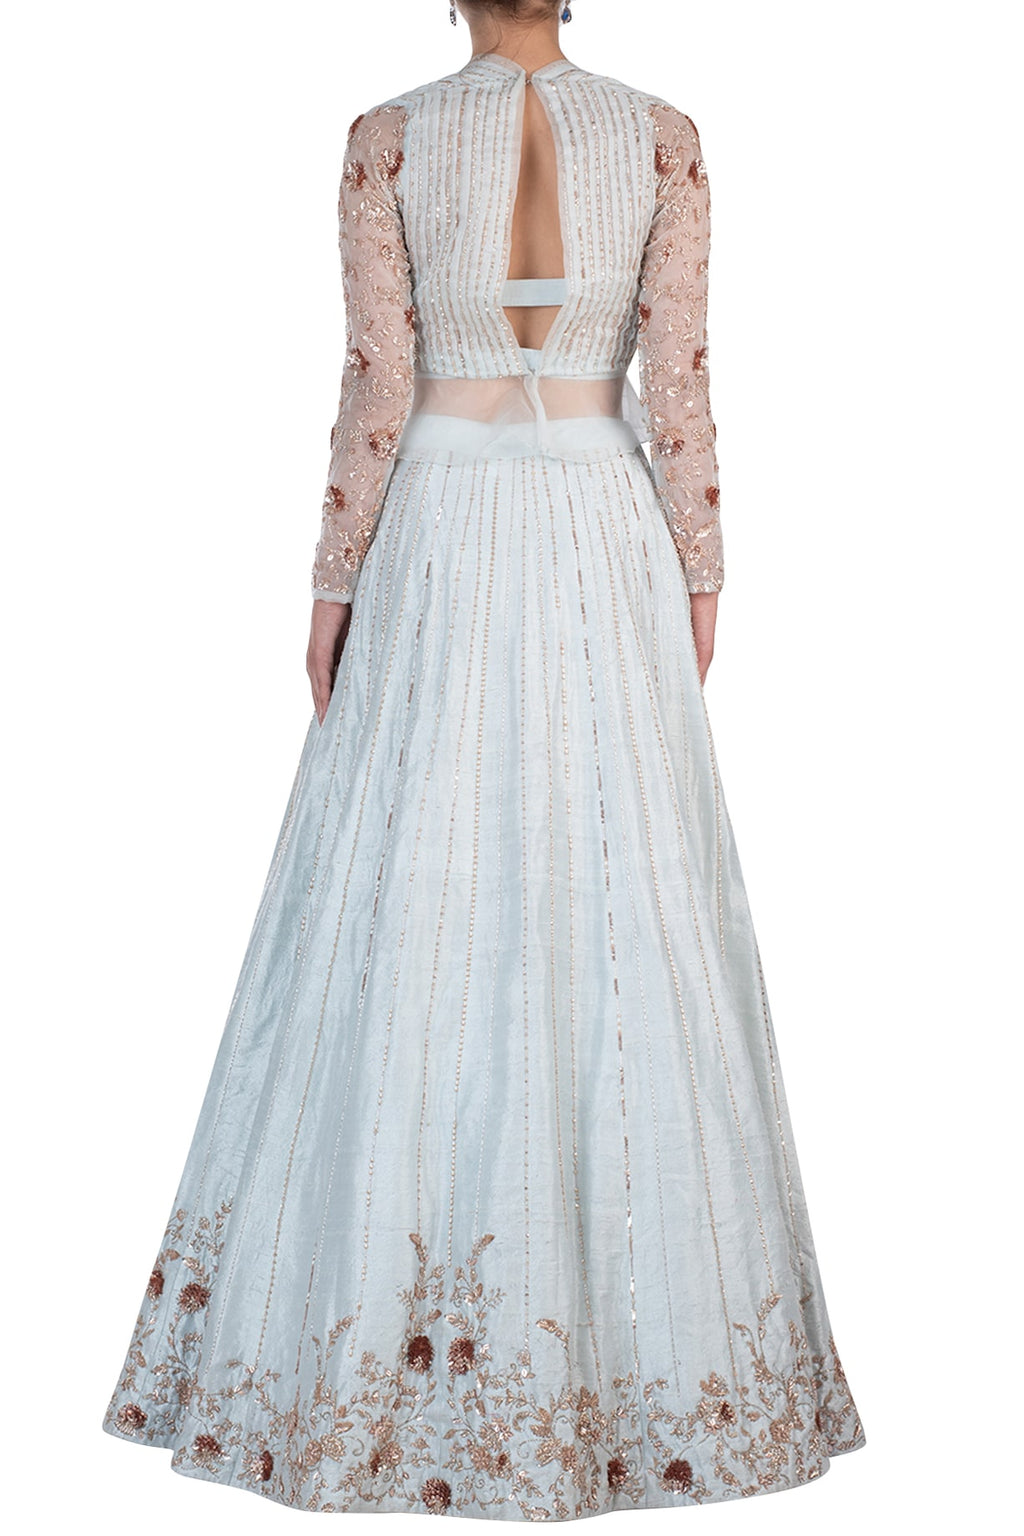 9b2c2f203a4dd3 POWDER BLUE EMBROIDERED LEHENGA SKIRT WITH BLOUSE – Almara®